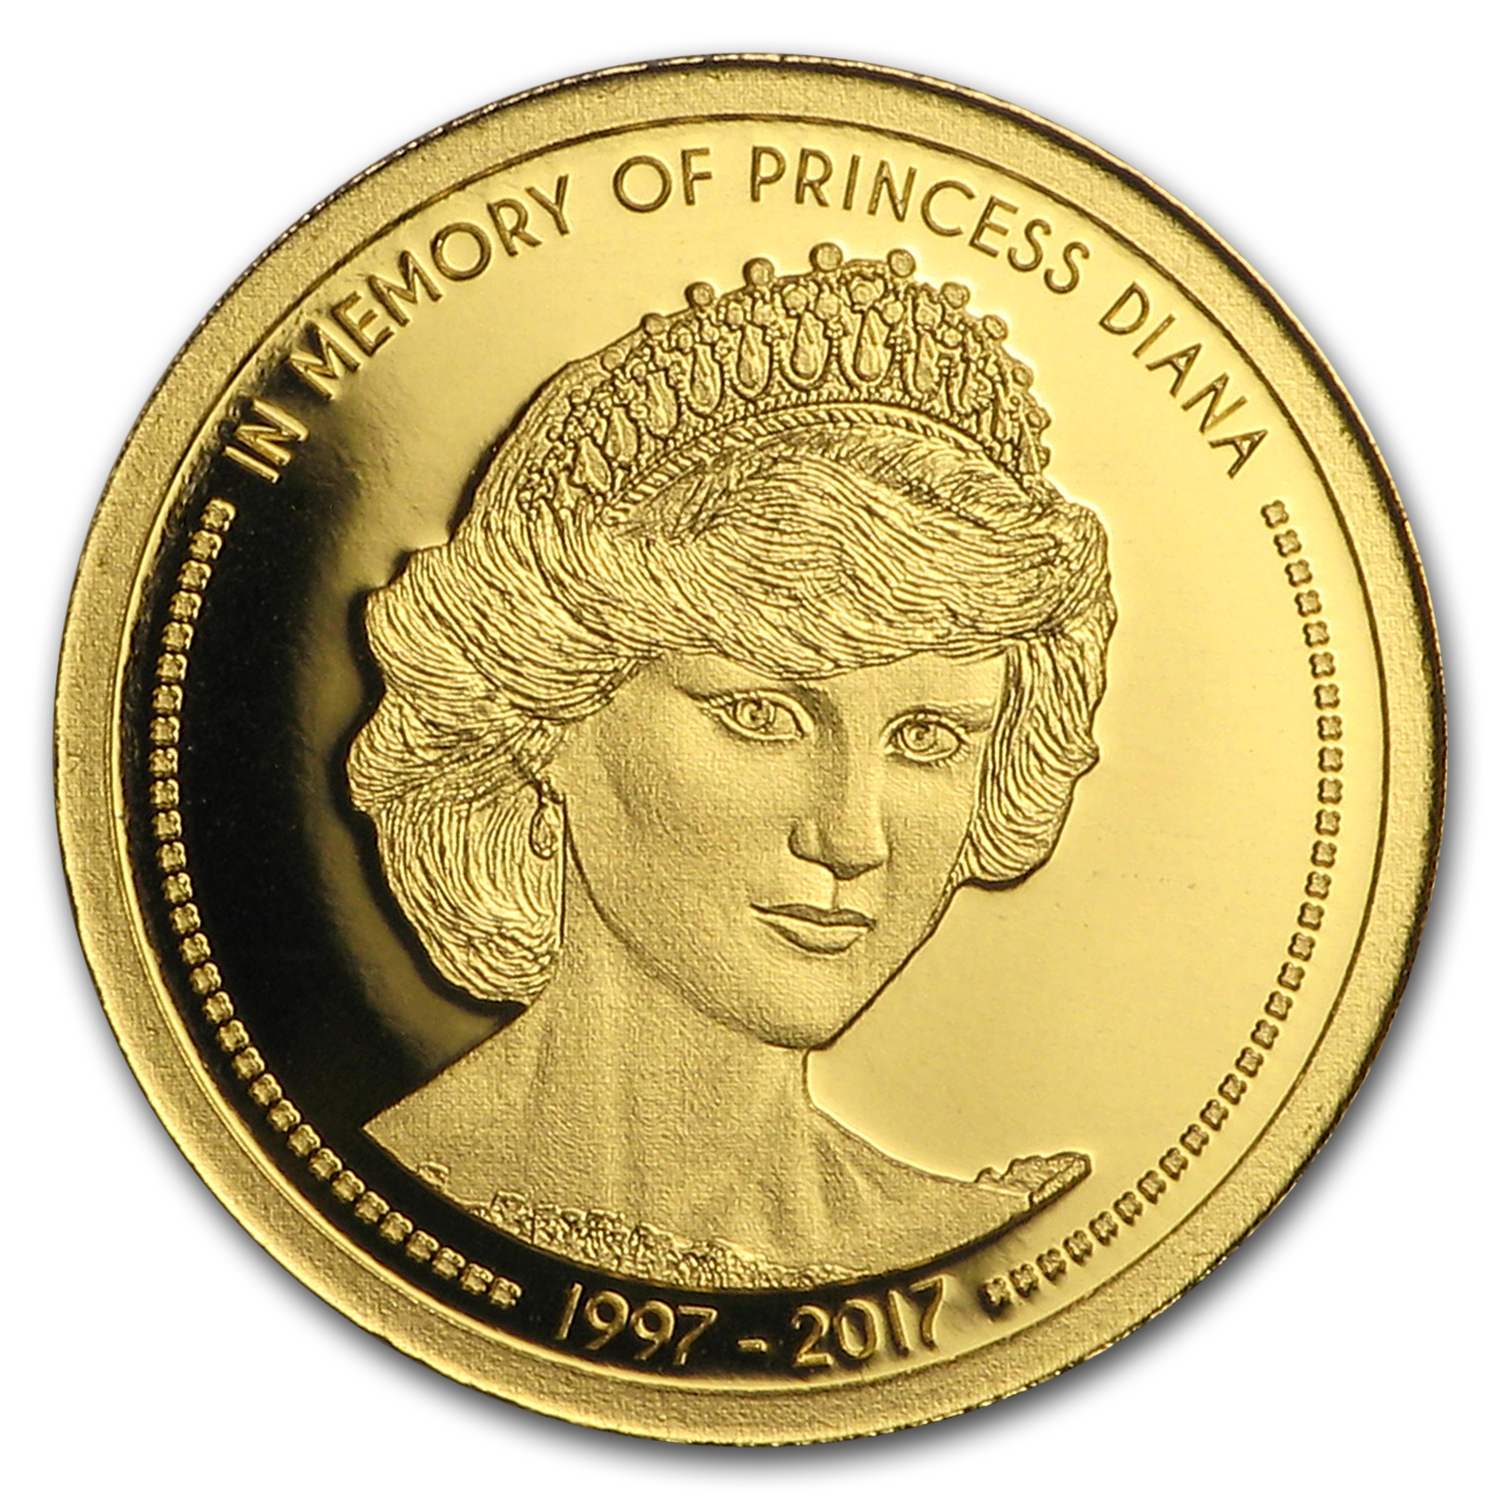 2017 Cook Islands 1 100 Oz Gold In Memory Of Princess